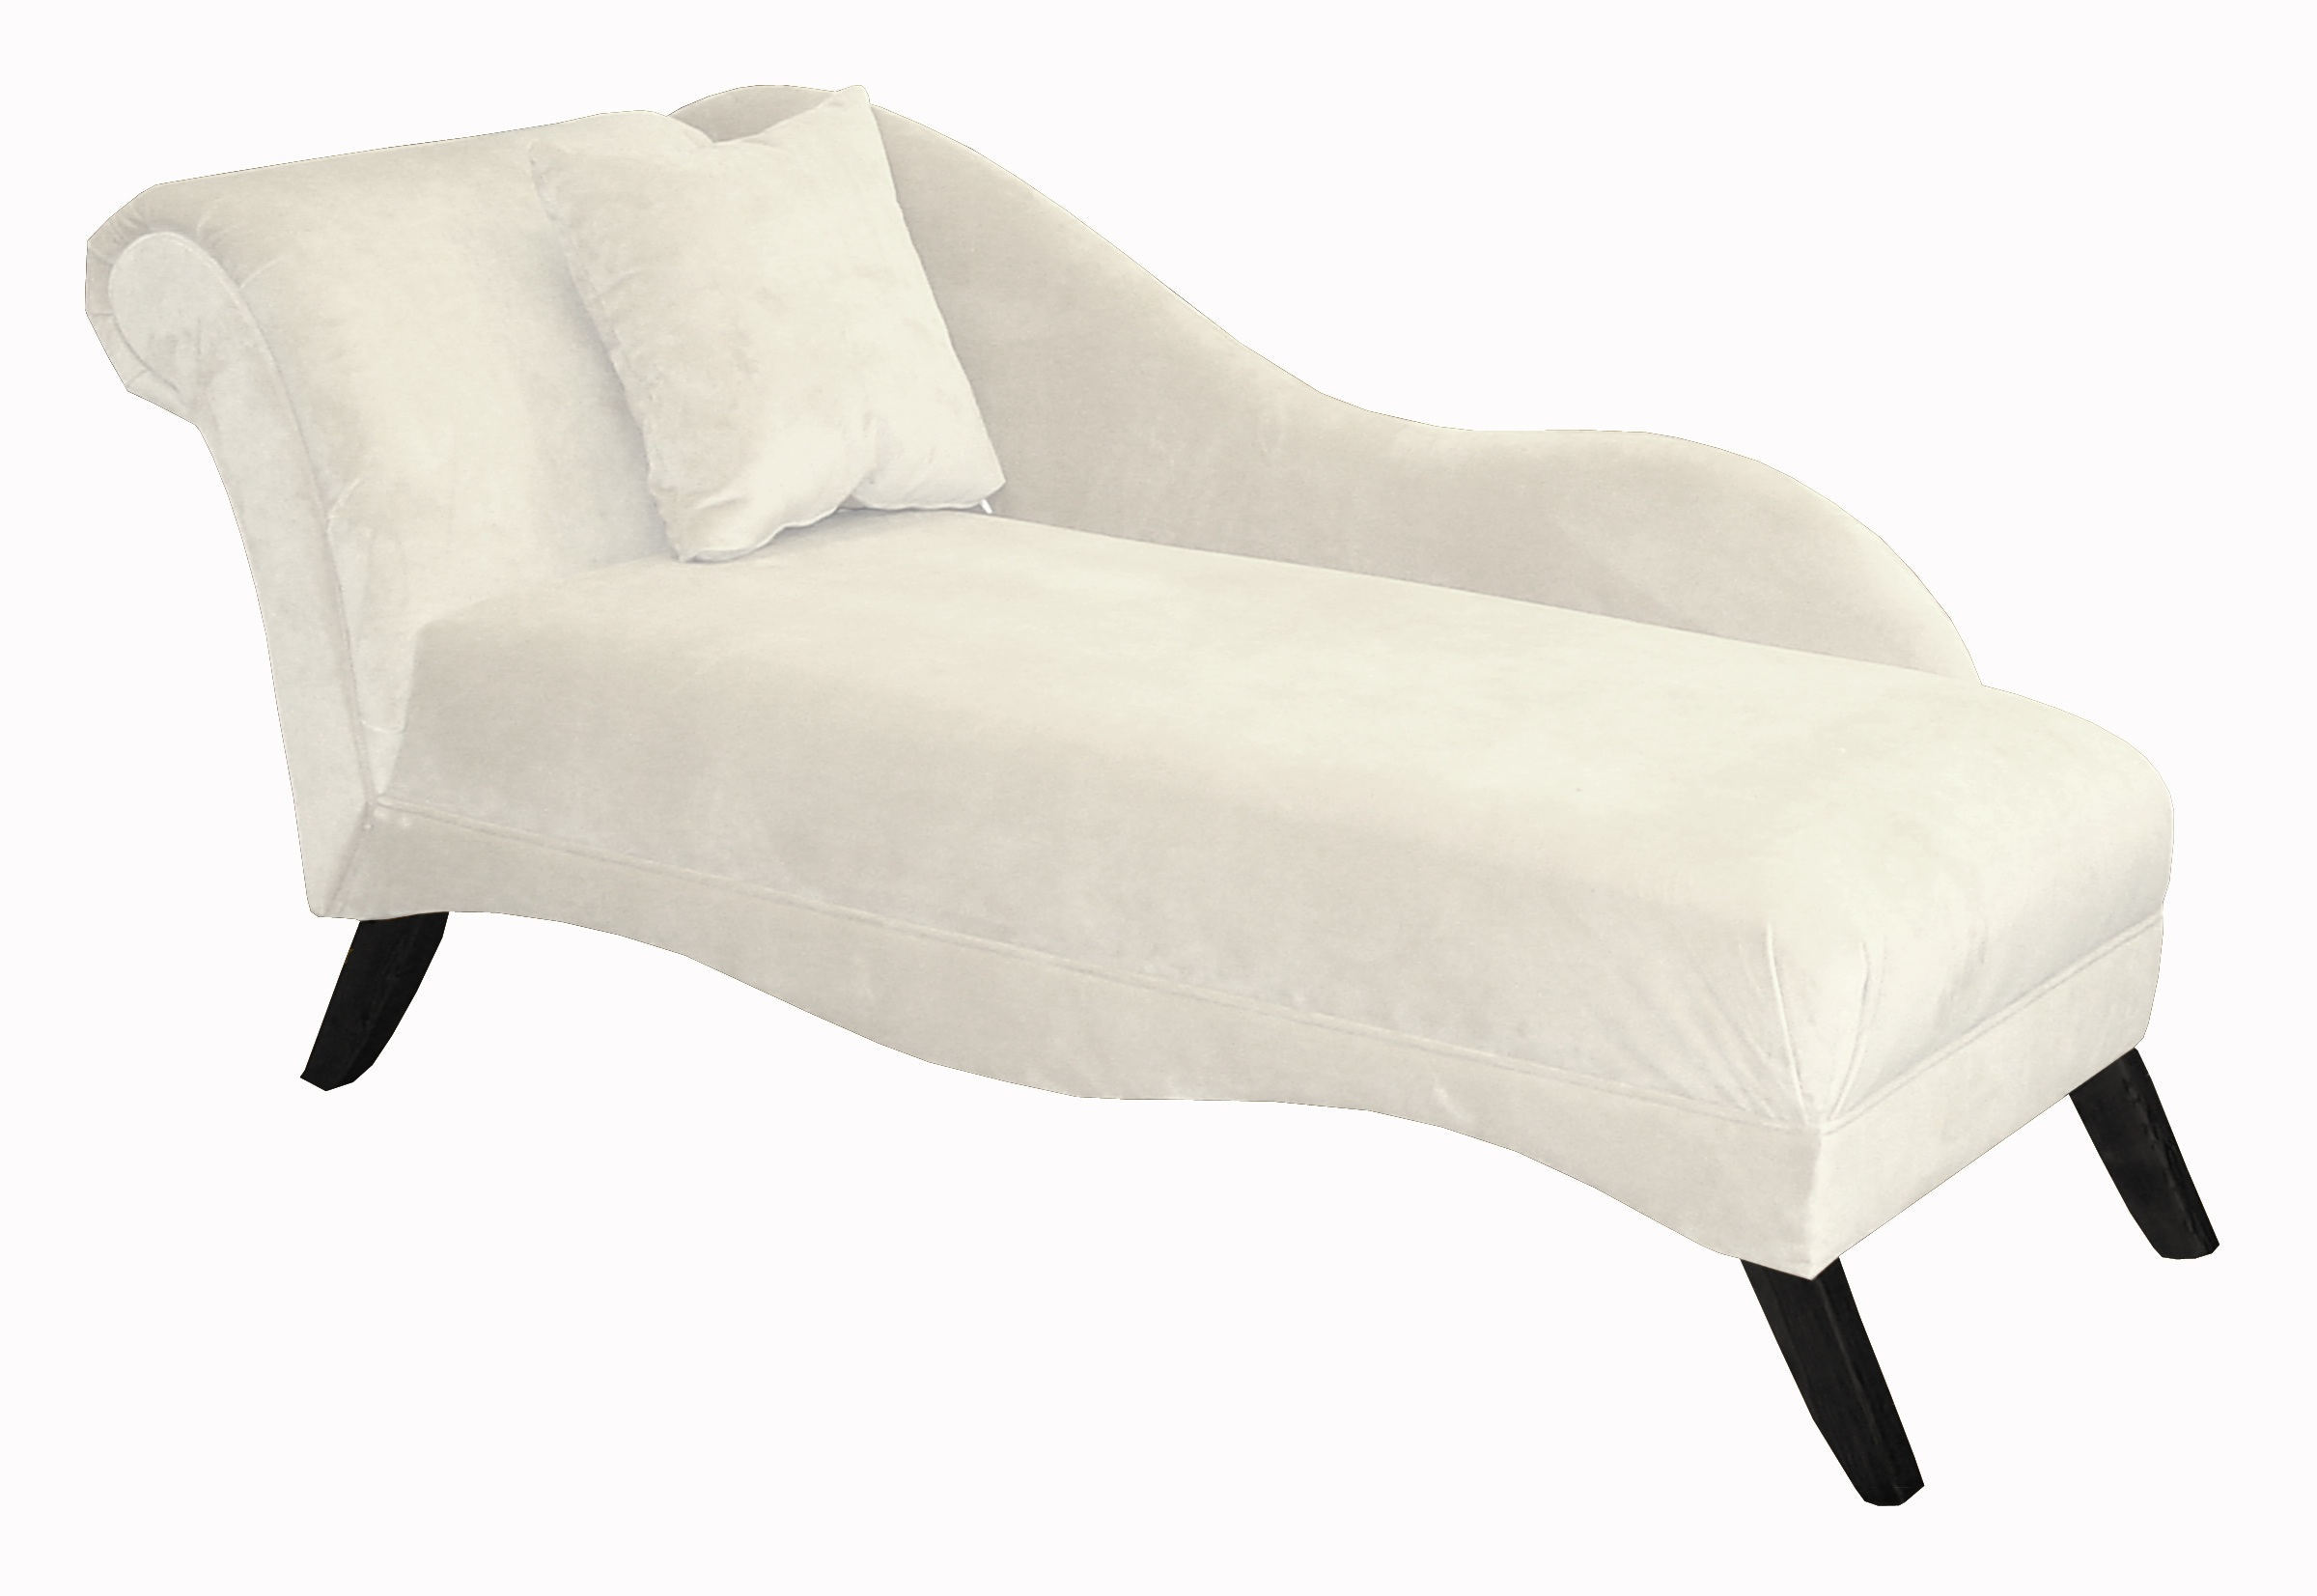 Remarkable White Chaise Lounge Chair 2400 x 1653 · 281 kB · jpeg